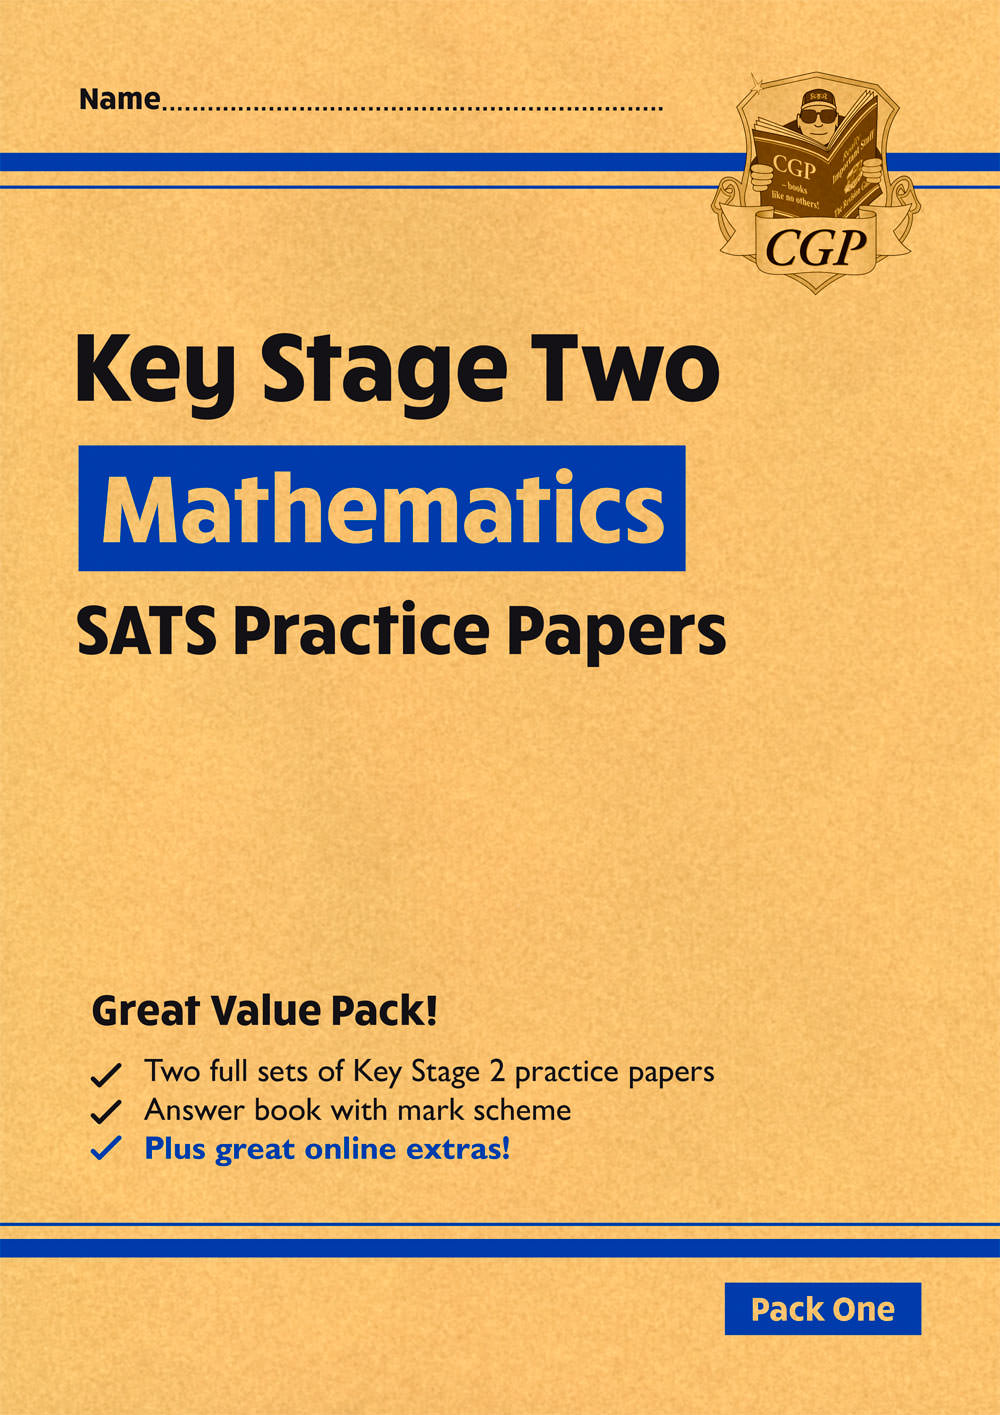 MHEP28 - New KS2 Maths SATS Practice Papers: Pack 1 - for the 2021 tests (with free Online Extras)